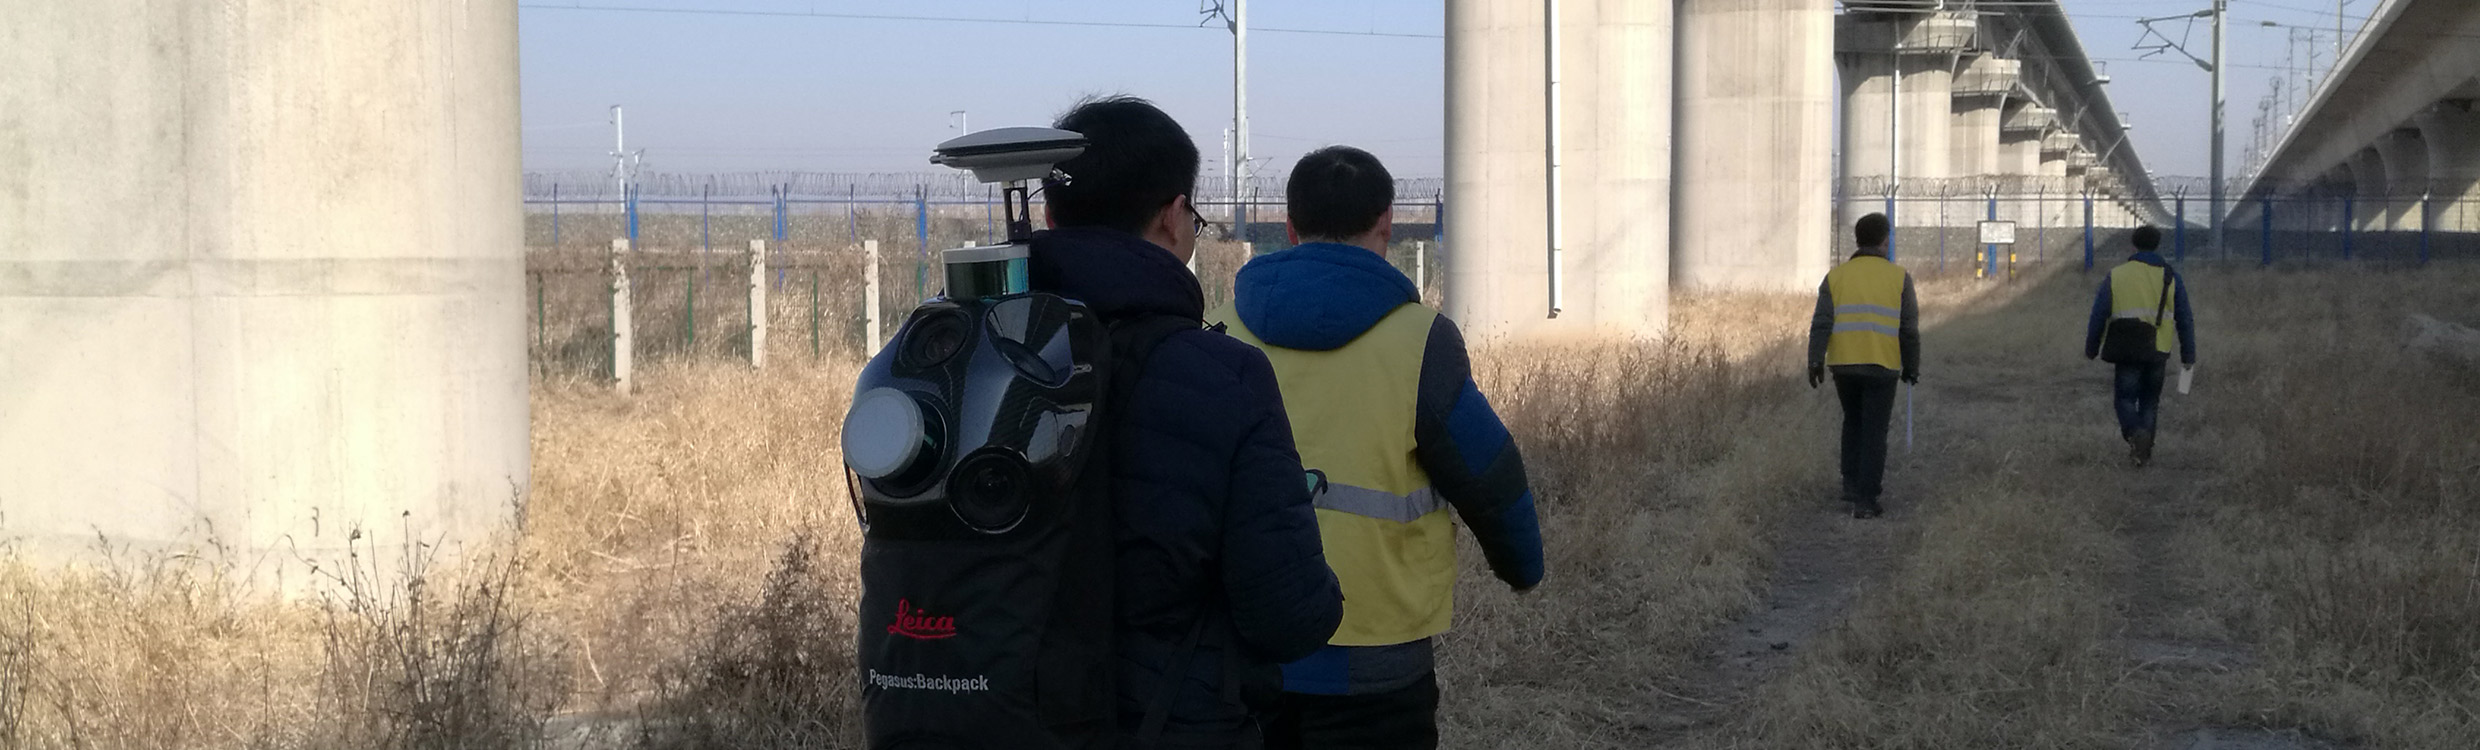 Capturing Chinese high-speed rails